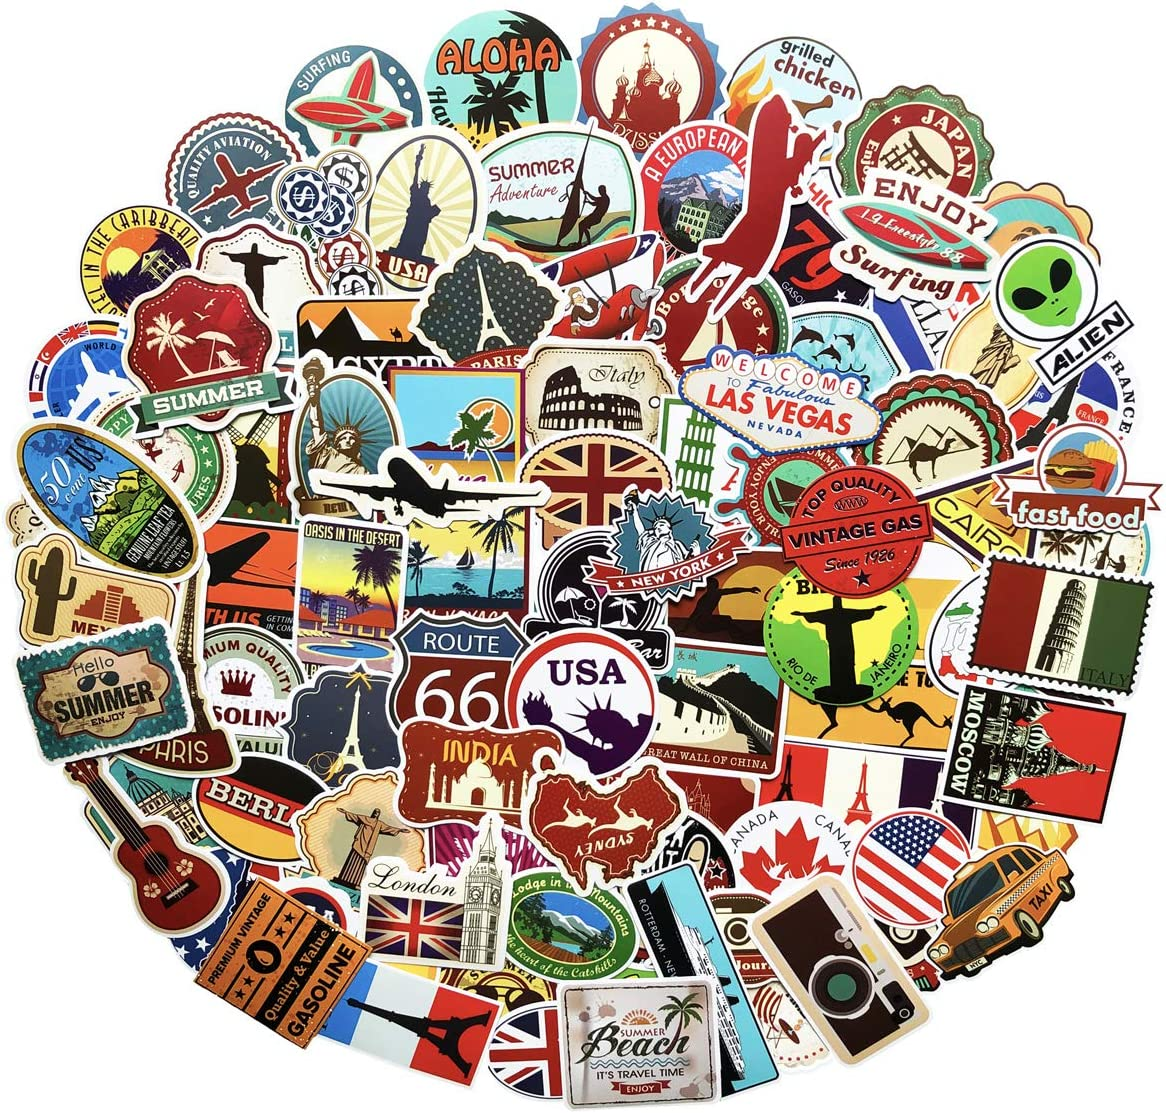 100PCS World Travel Maps Airplane Air and Famous Buildings Signs Stickers Waterproof Laptop Stickers Car Bicycle Suitcase Computer Water Bottle Mobile Phone Stickers Decals (Travel Maps 100)